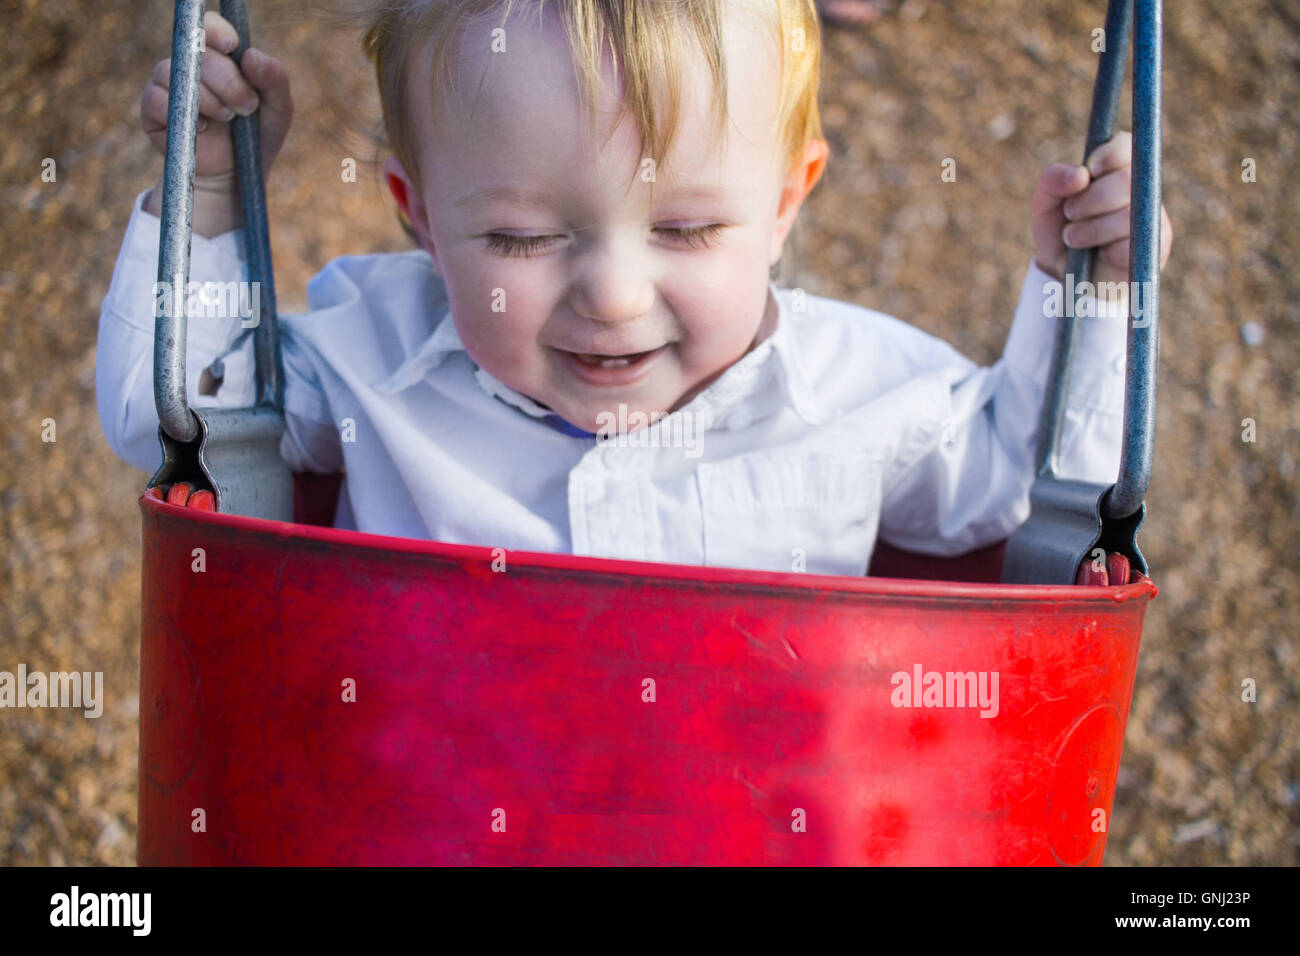 Smiling boy sitting in swing godet Photo Stock